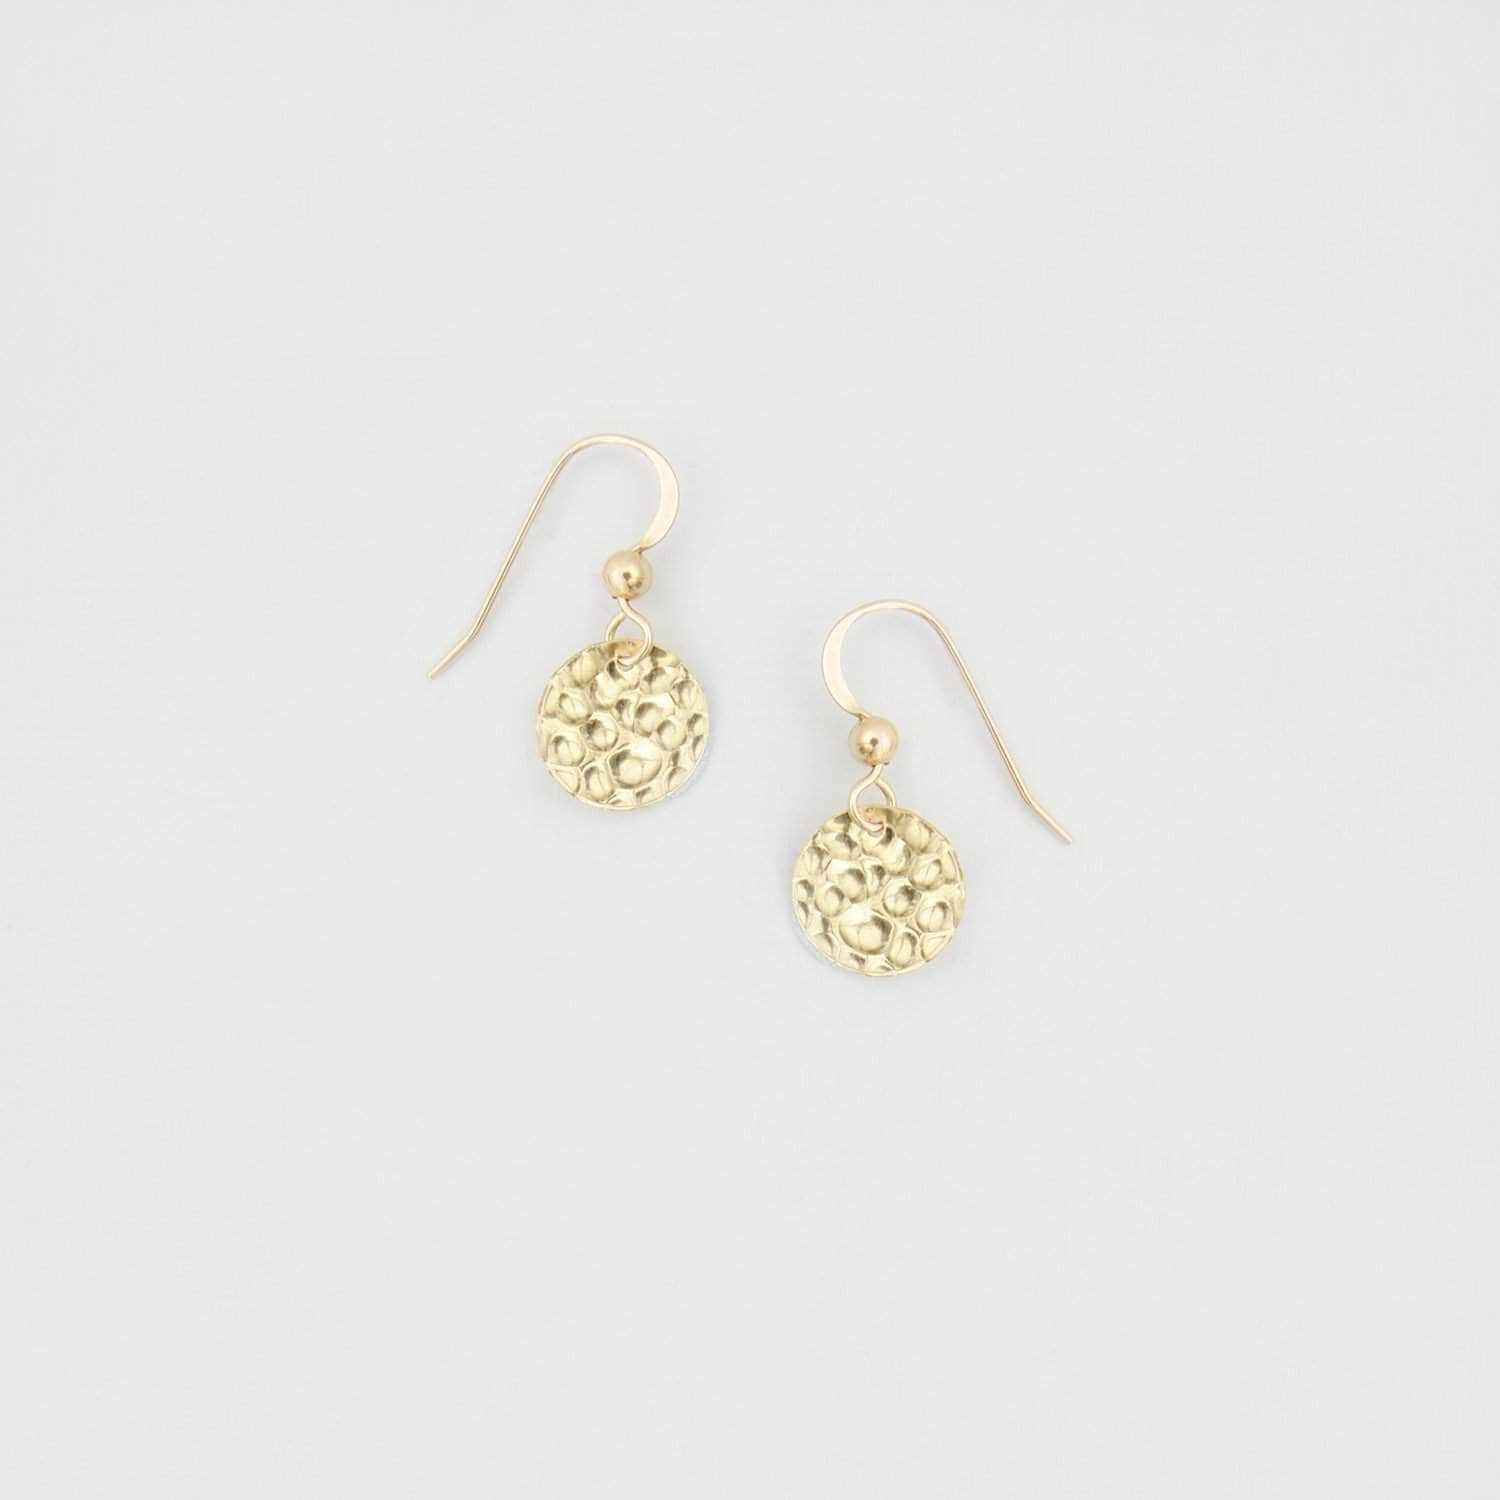 Wedding Earring 14k Gold Filled Gold Hammered Disk Earrings - 'Effie'